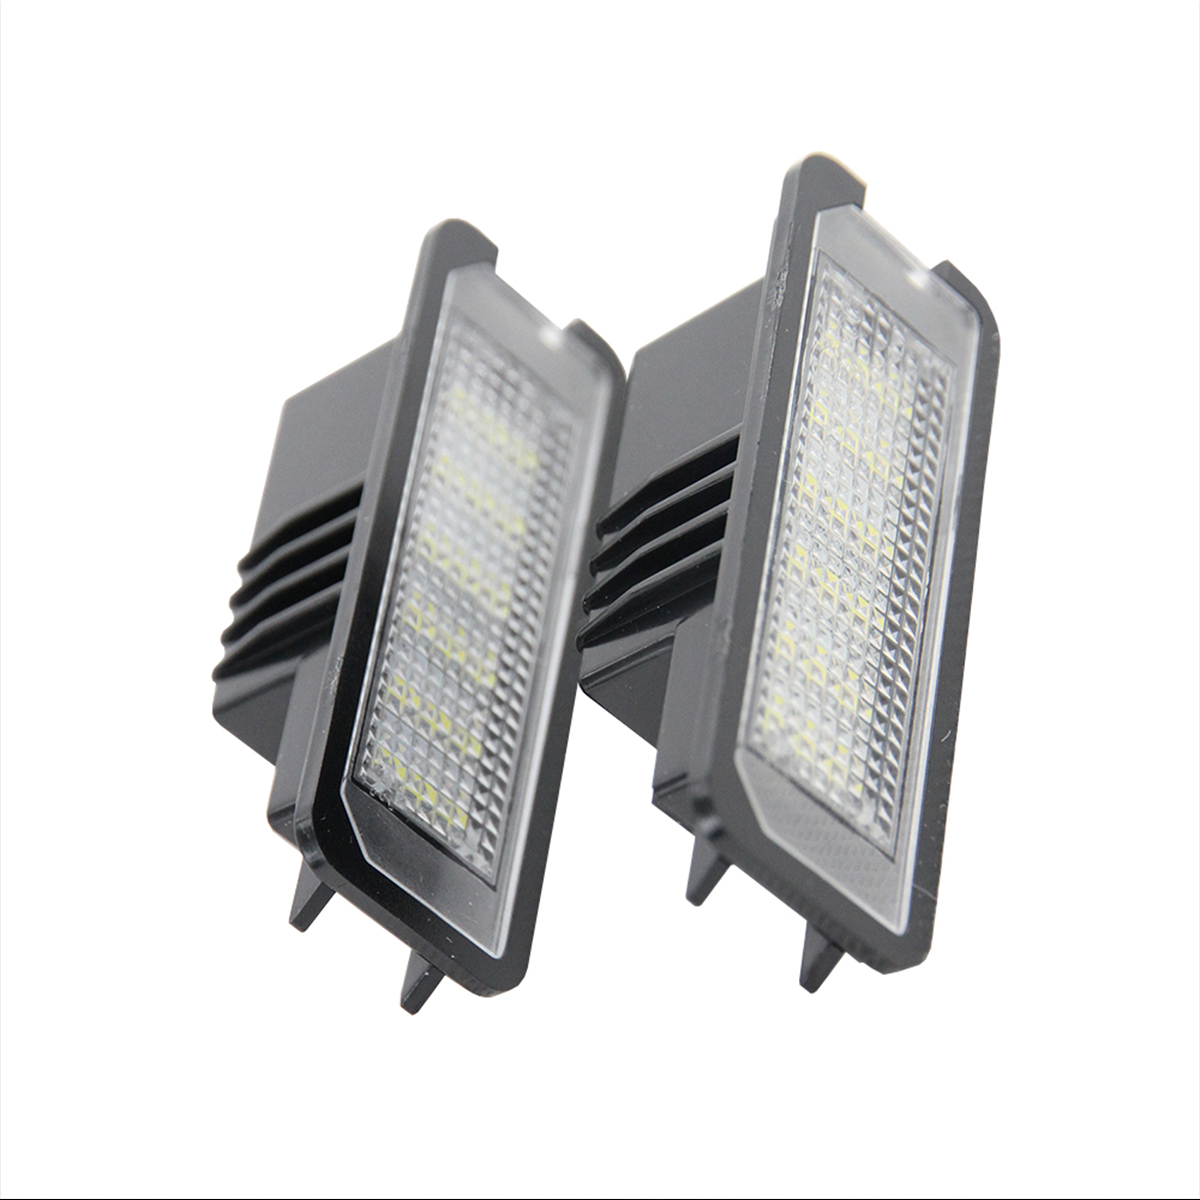 2Pcs 12V LED Number License Plate Light Lamps for VW GOLF 4 <font><b>5</b></font> 6 7 Polo 6R Car License Plate Lights Exterior Accessories image